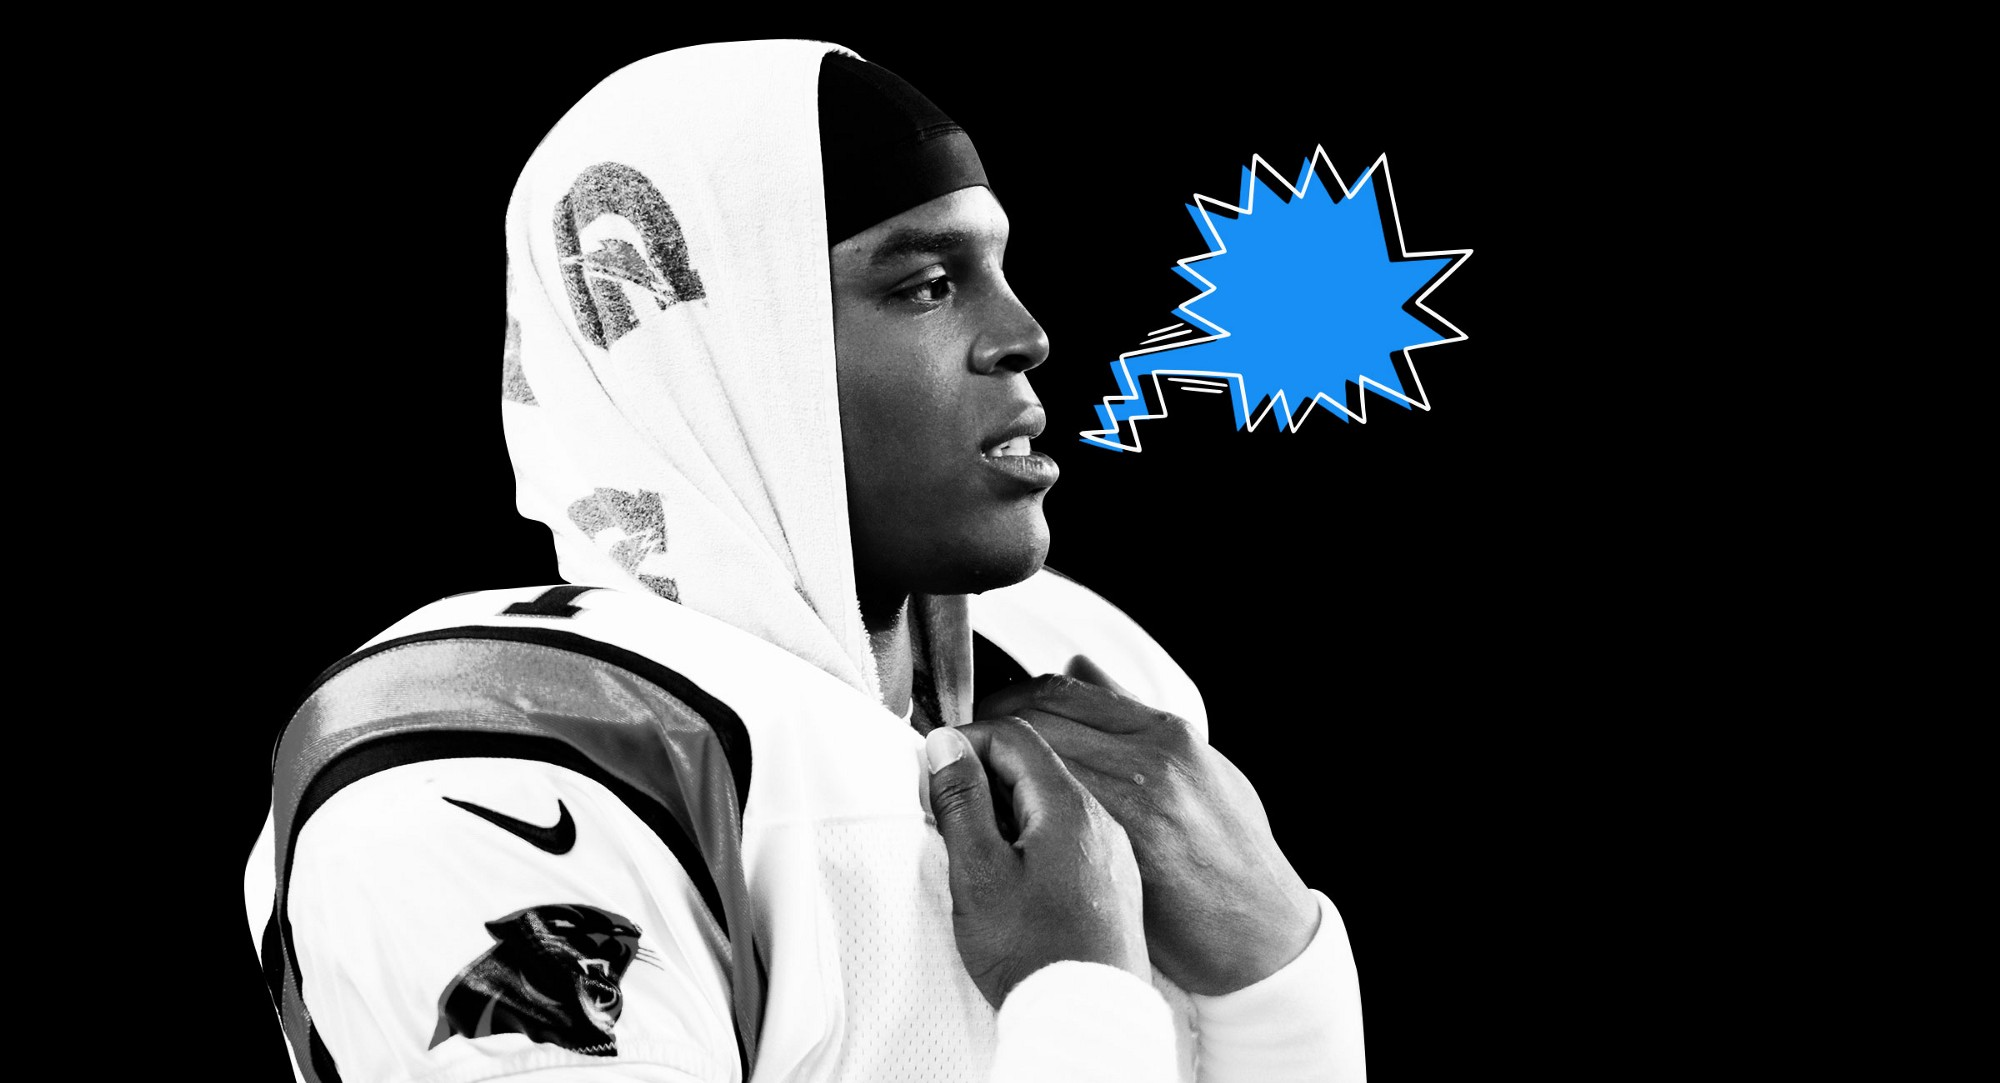 Panthers QB Newton apologizes for sexist comments to reporter